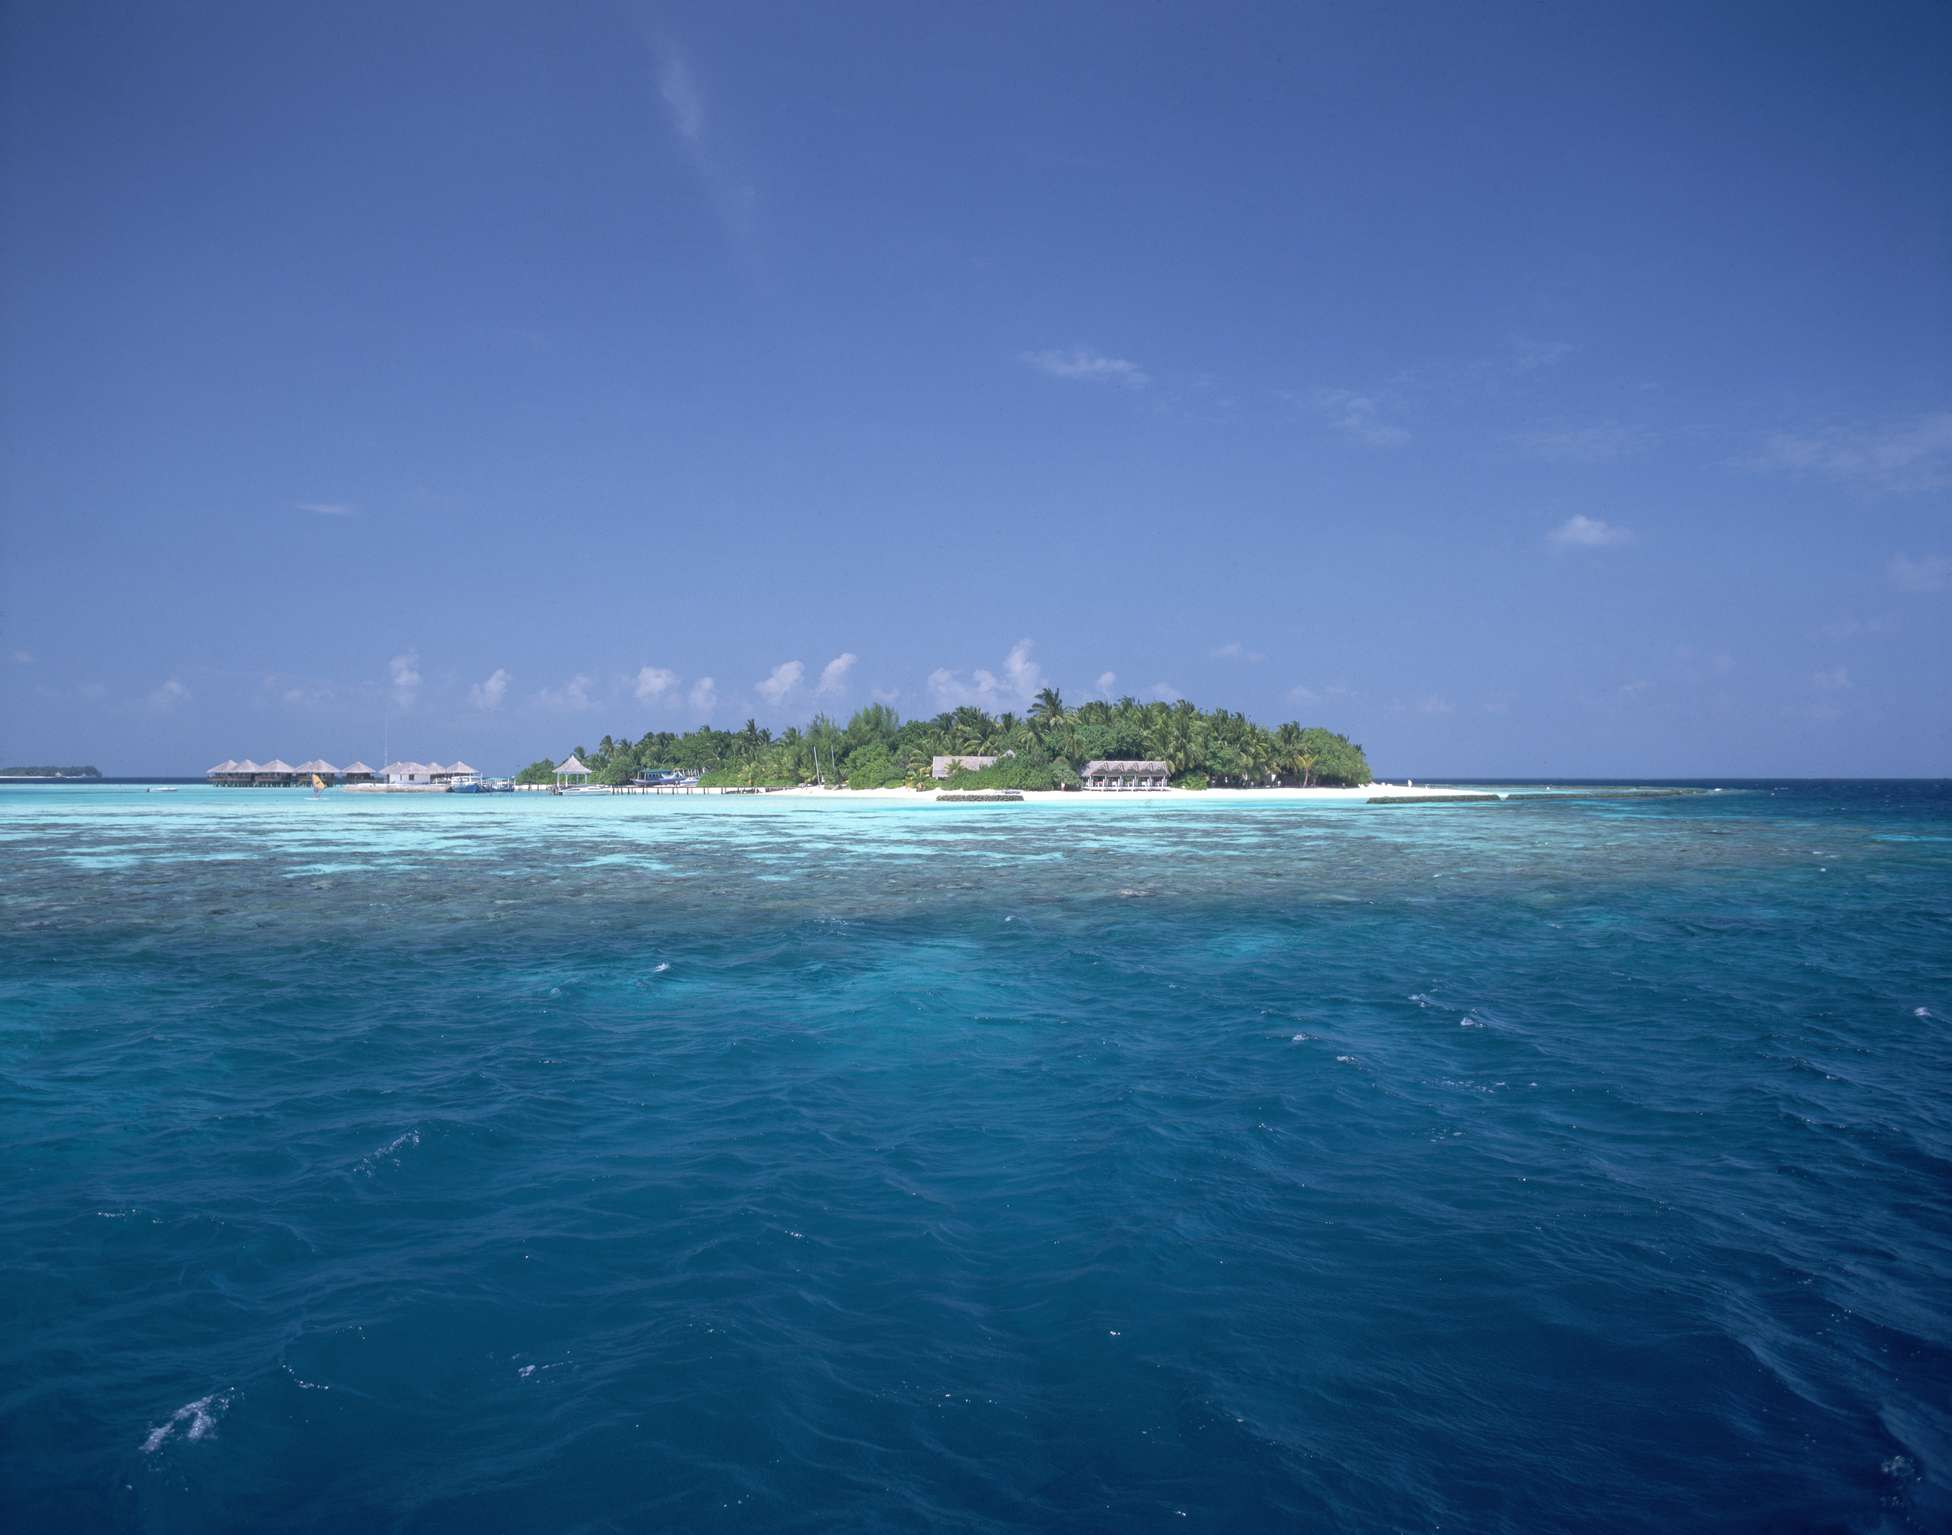 View of Baros island in the Maldives